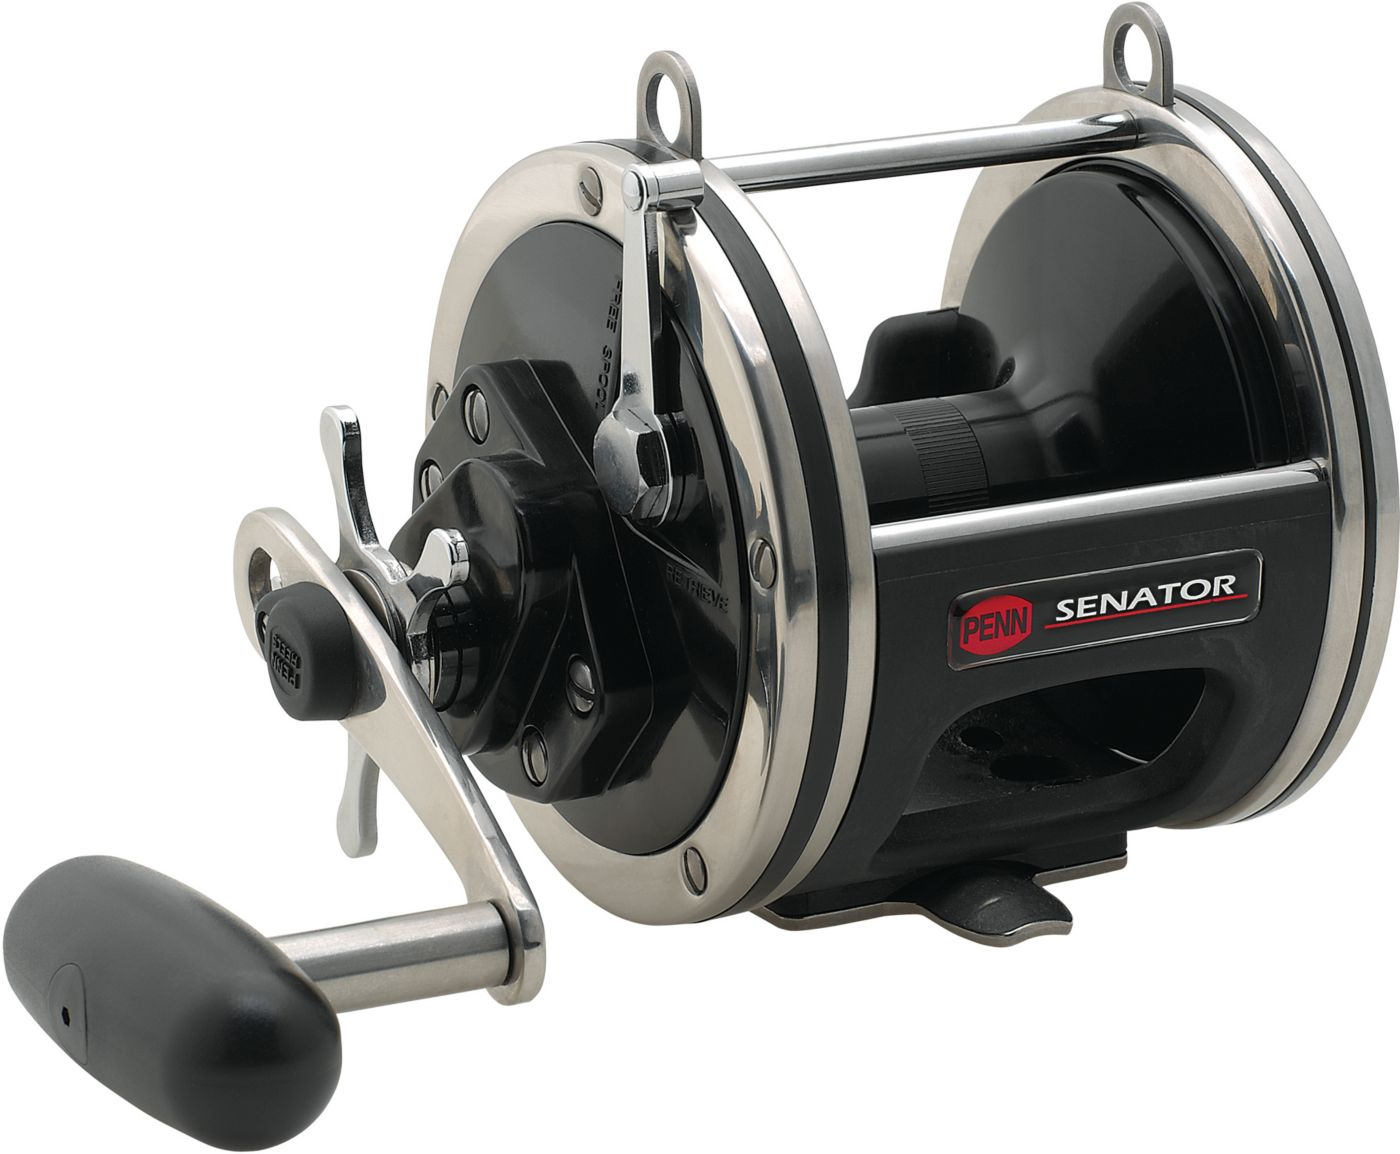 PENN Senator Star Drag Conventional Reel